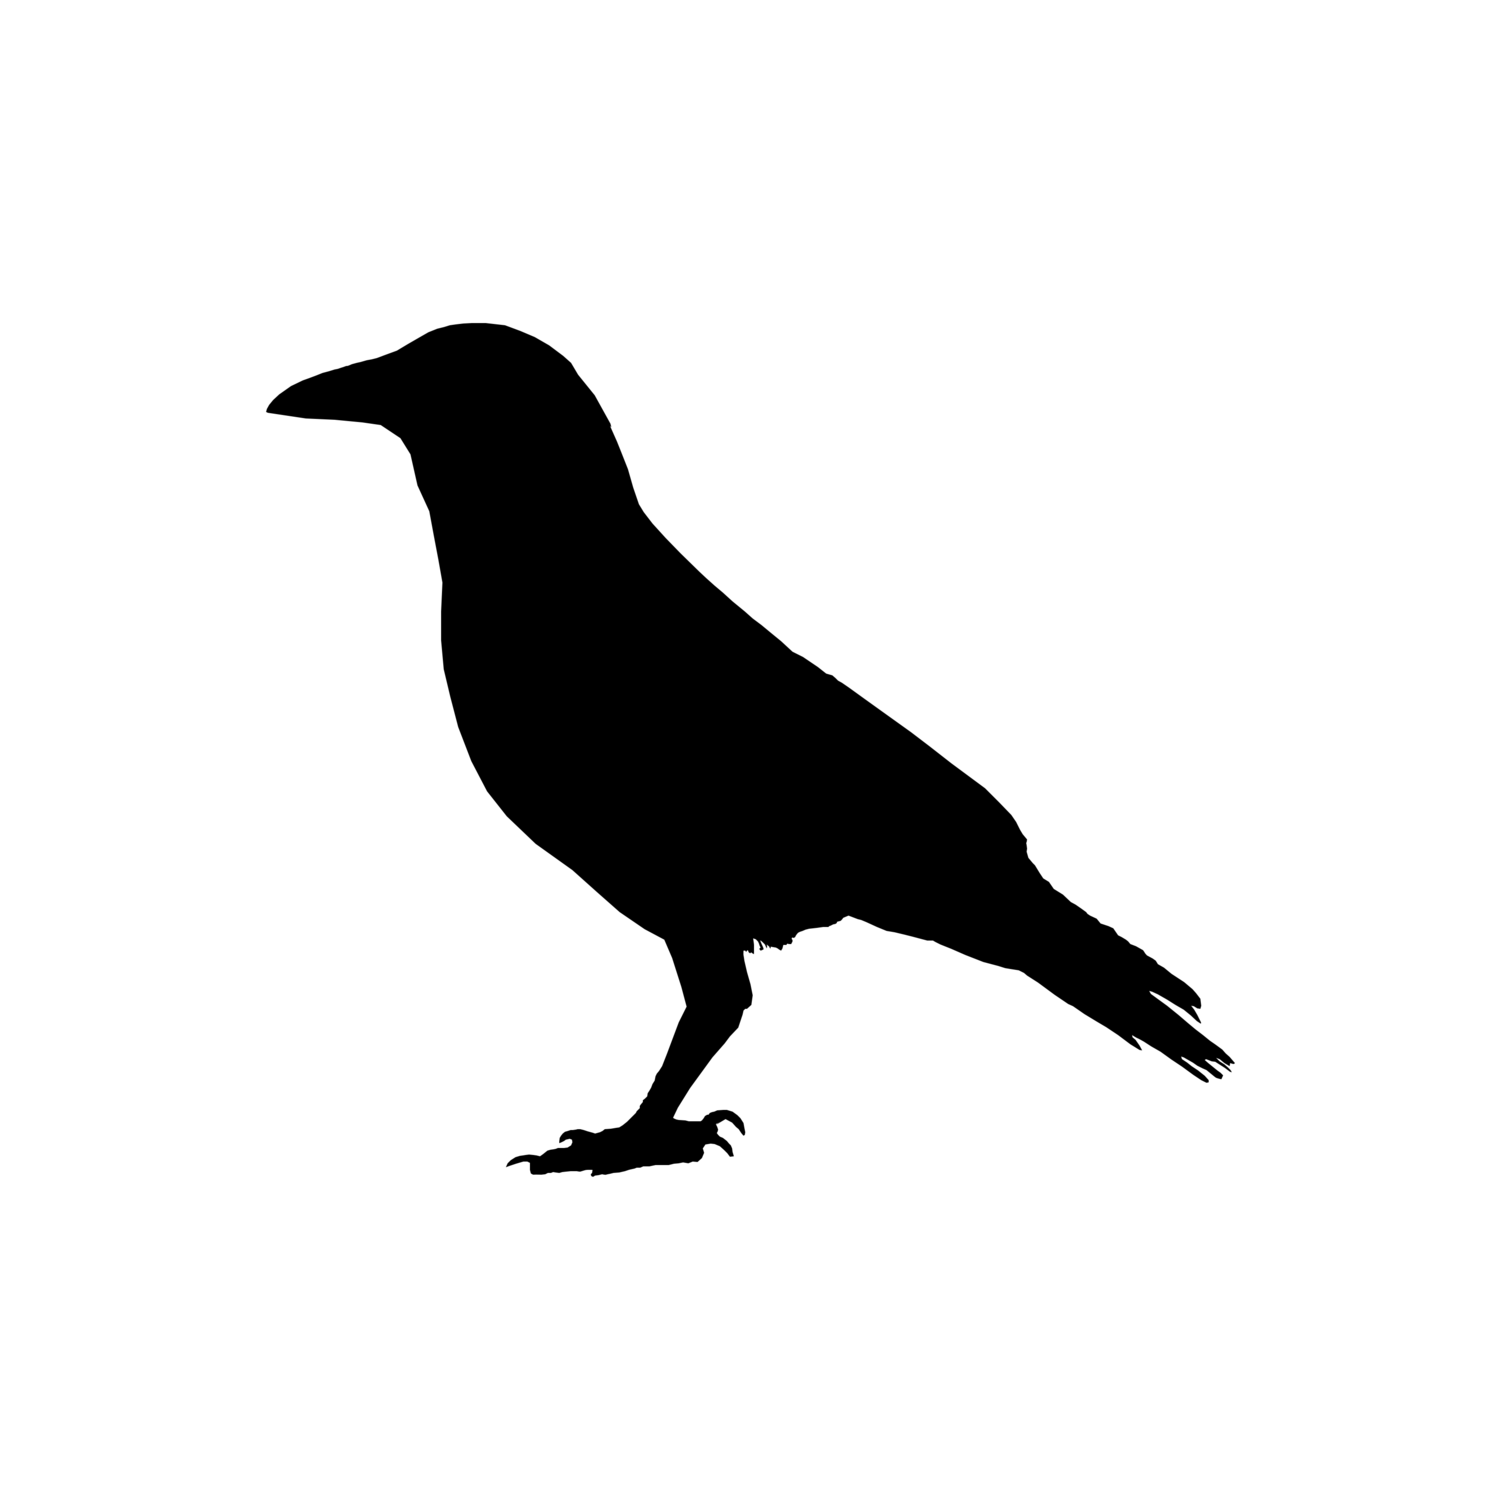 crowy.png.3095ef3ffb499aa2863e038676c0664e.png